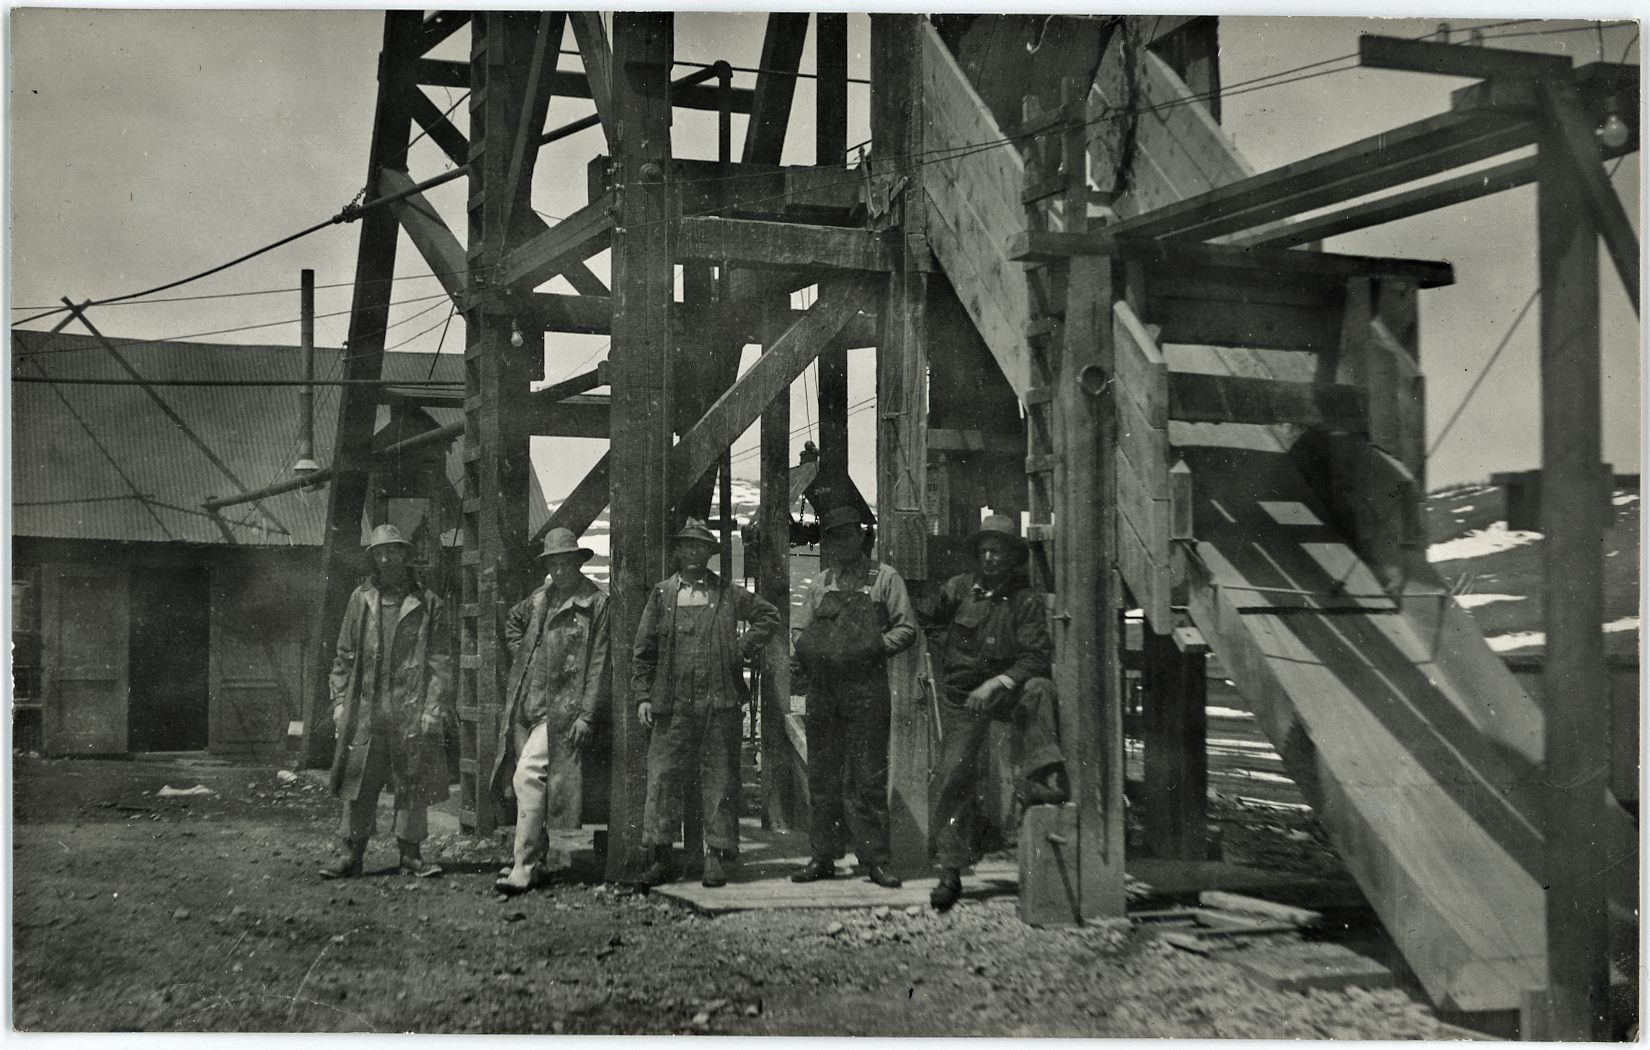 This enhanced view of my 300dpi scan of the source postcard shows some of the surface structures at the Cameron Mine, where 5 men are posing for the photographer, standing in front of a Head-Frame, with the Hoist-House and shed type of structure in background left and a chute down from the Head-Frame in front right. I've seen a marked postcard with the same head-frame and hoist-house look as here, hence the strong feel this being the Cameron Mine, located in Cameron/Grassy Valley in the District.